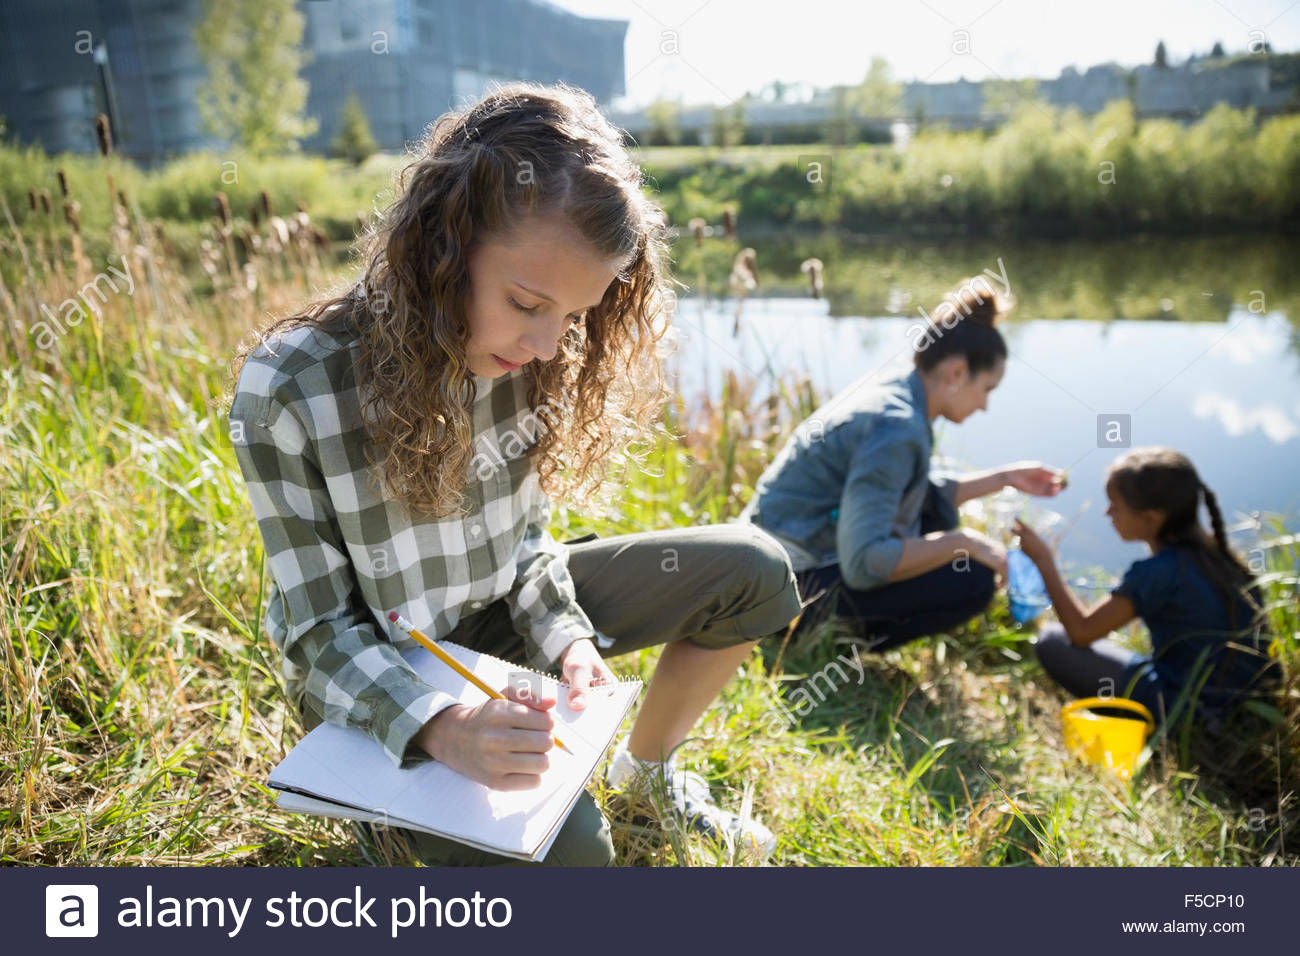 Schoolgirl taking notes on field trip at pond - Stock Image